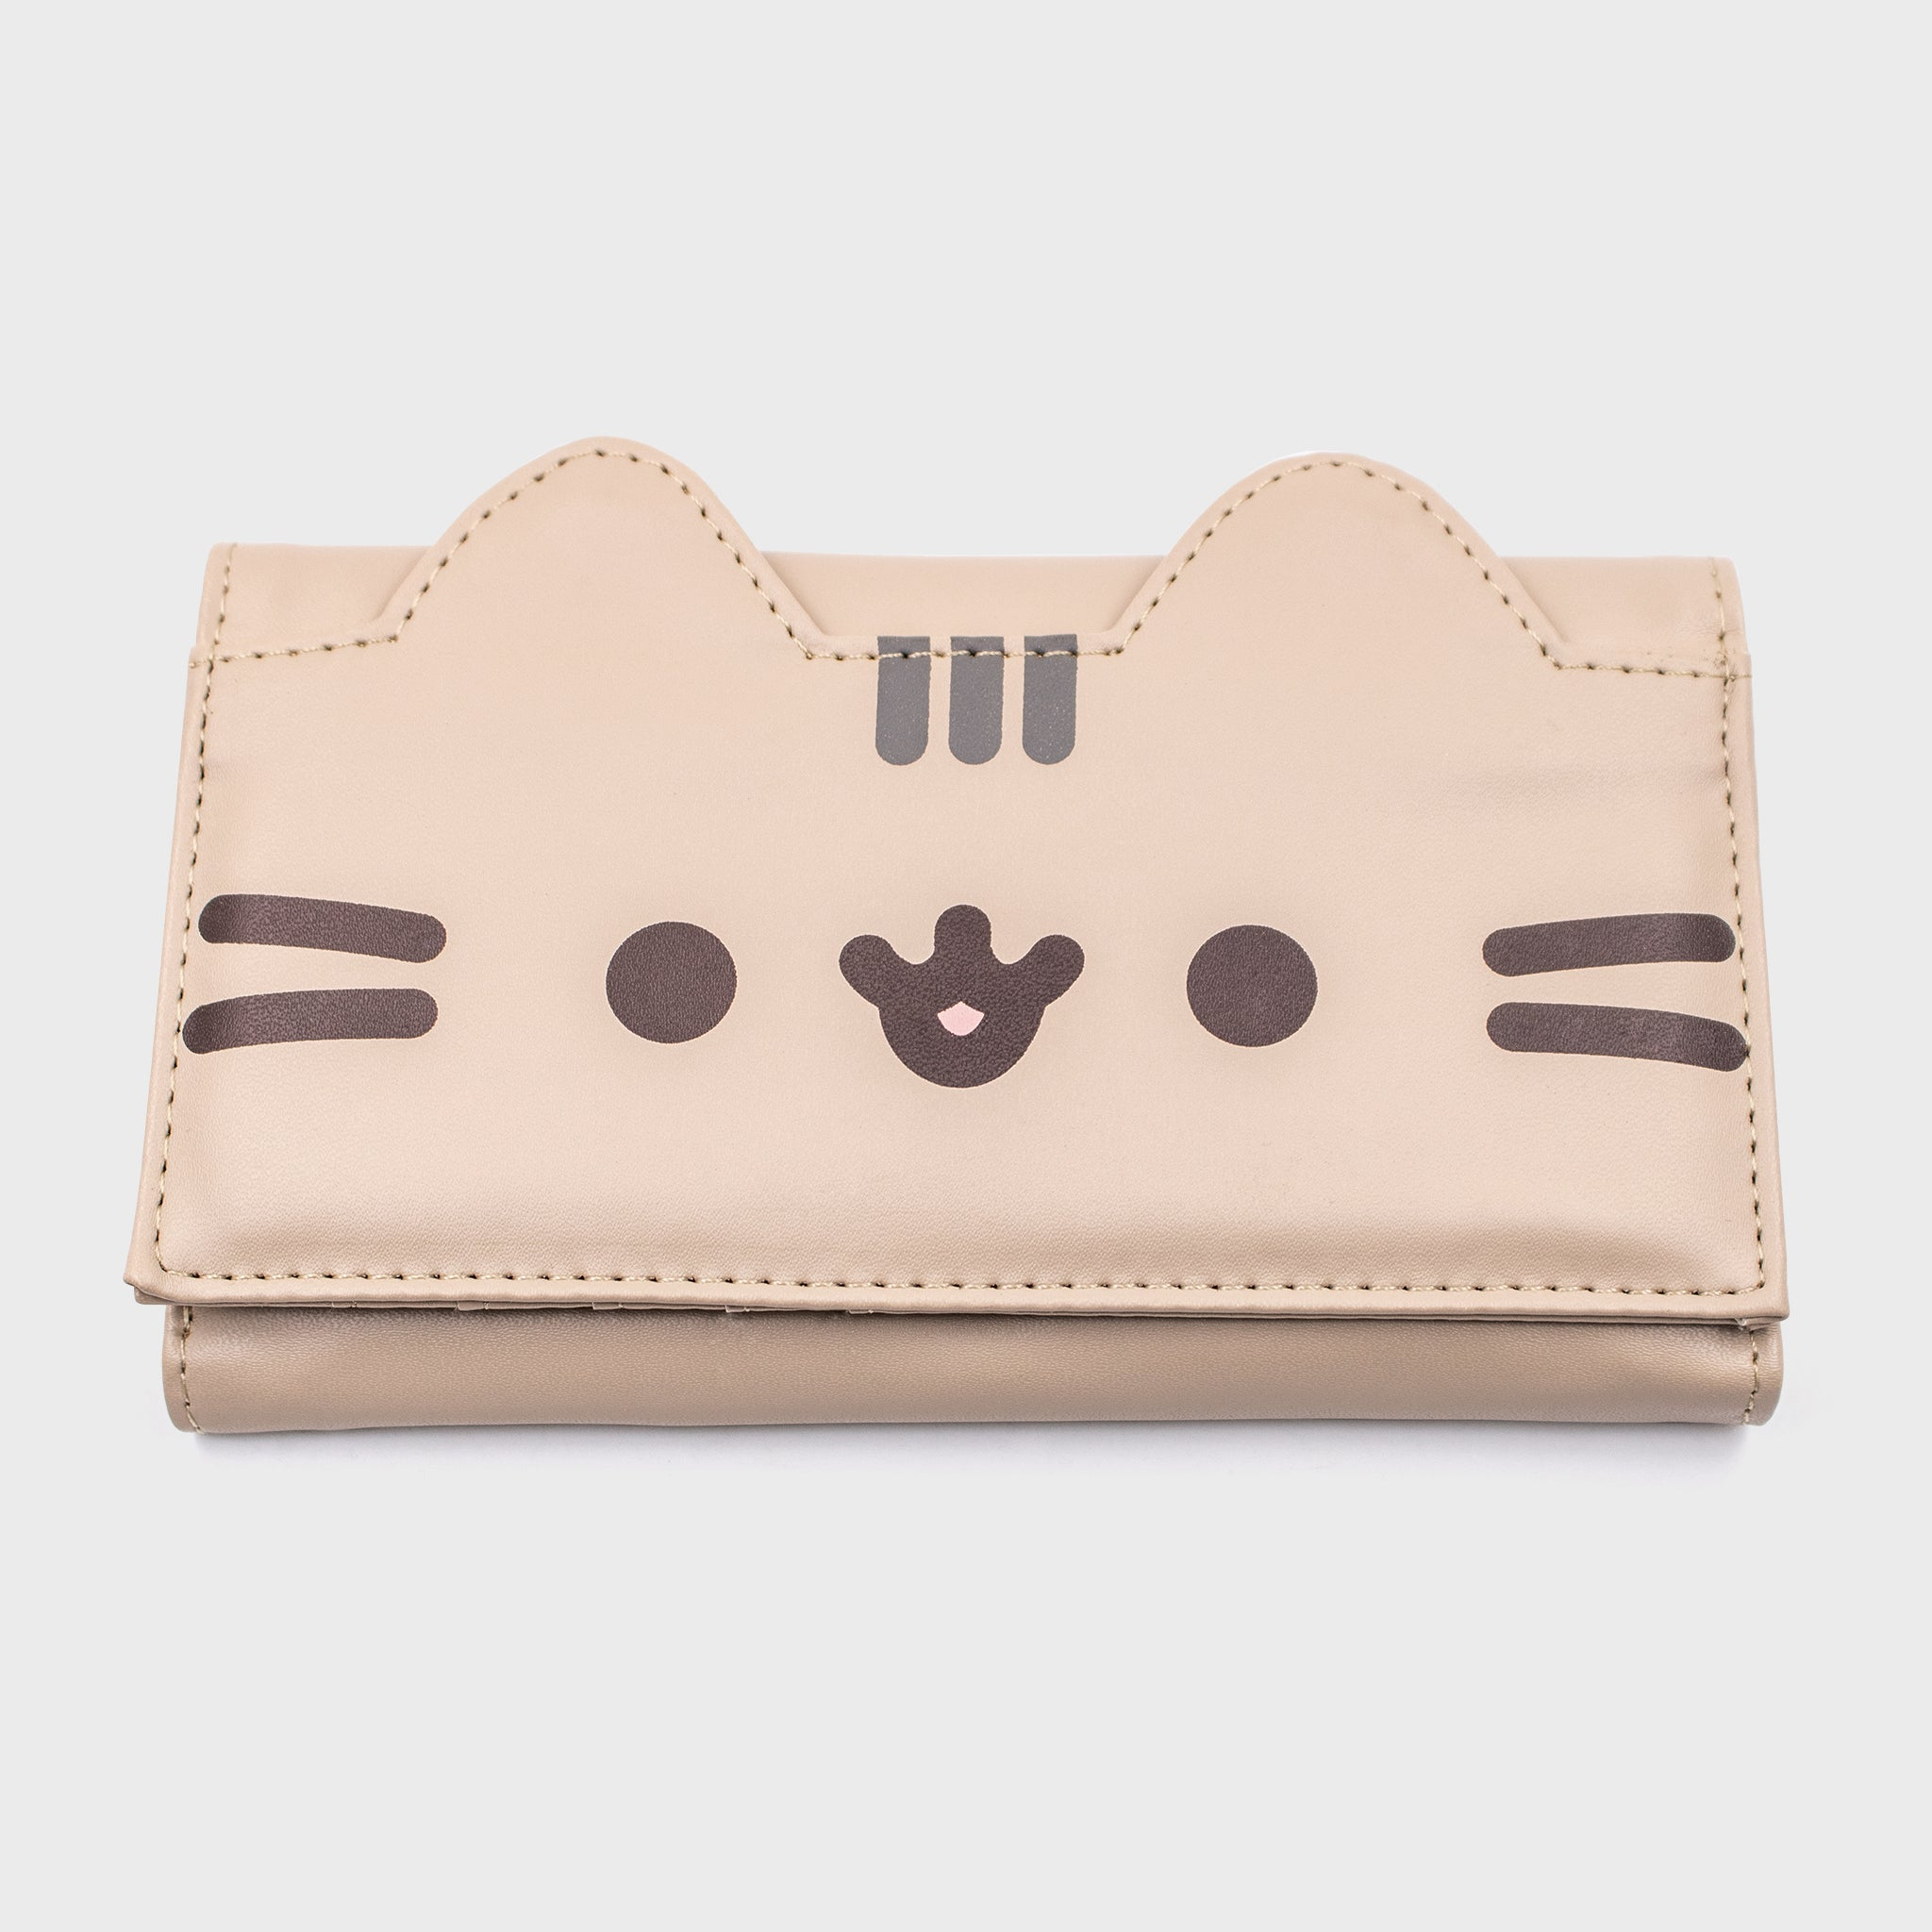 Pusheen - Character Wallet